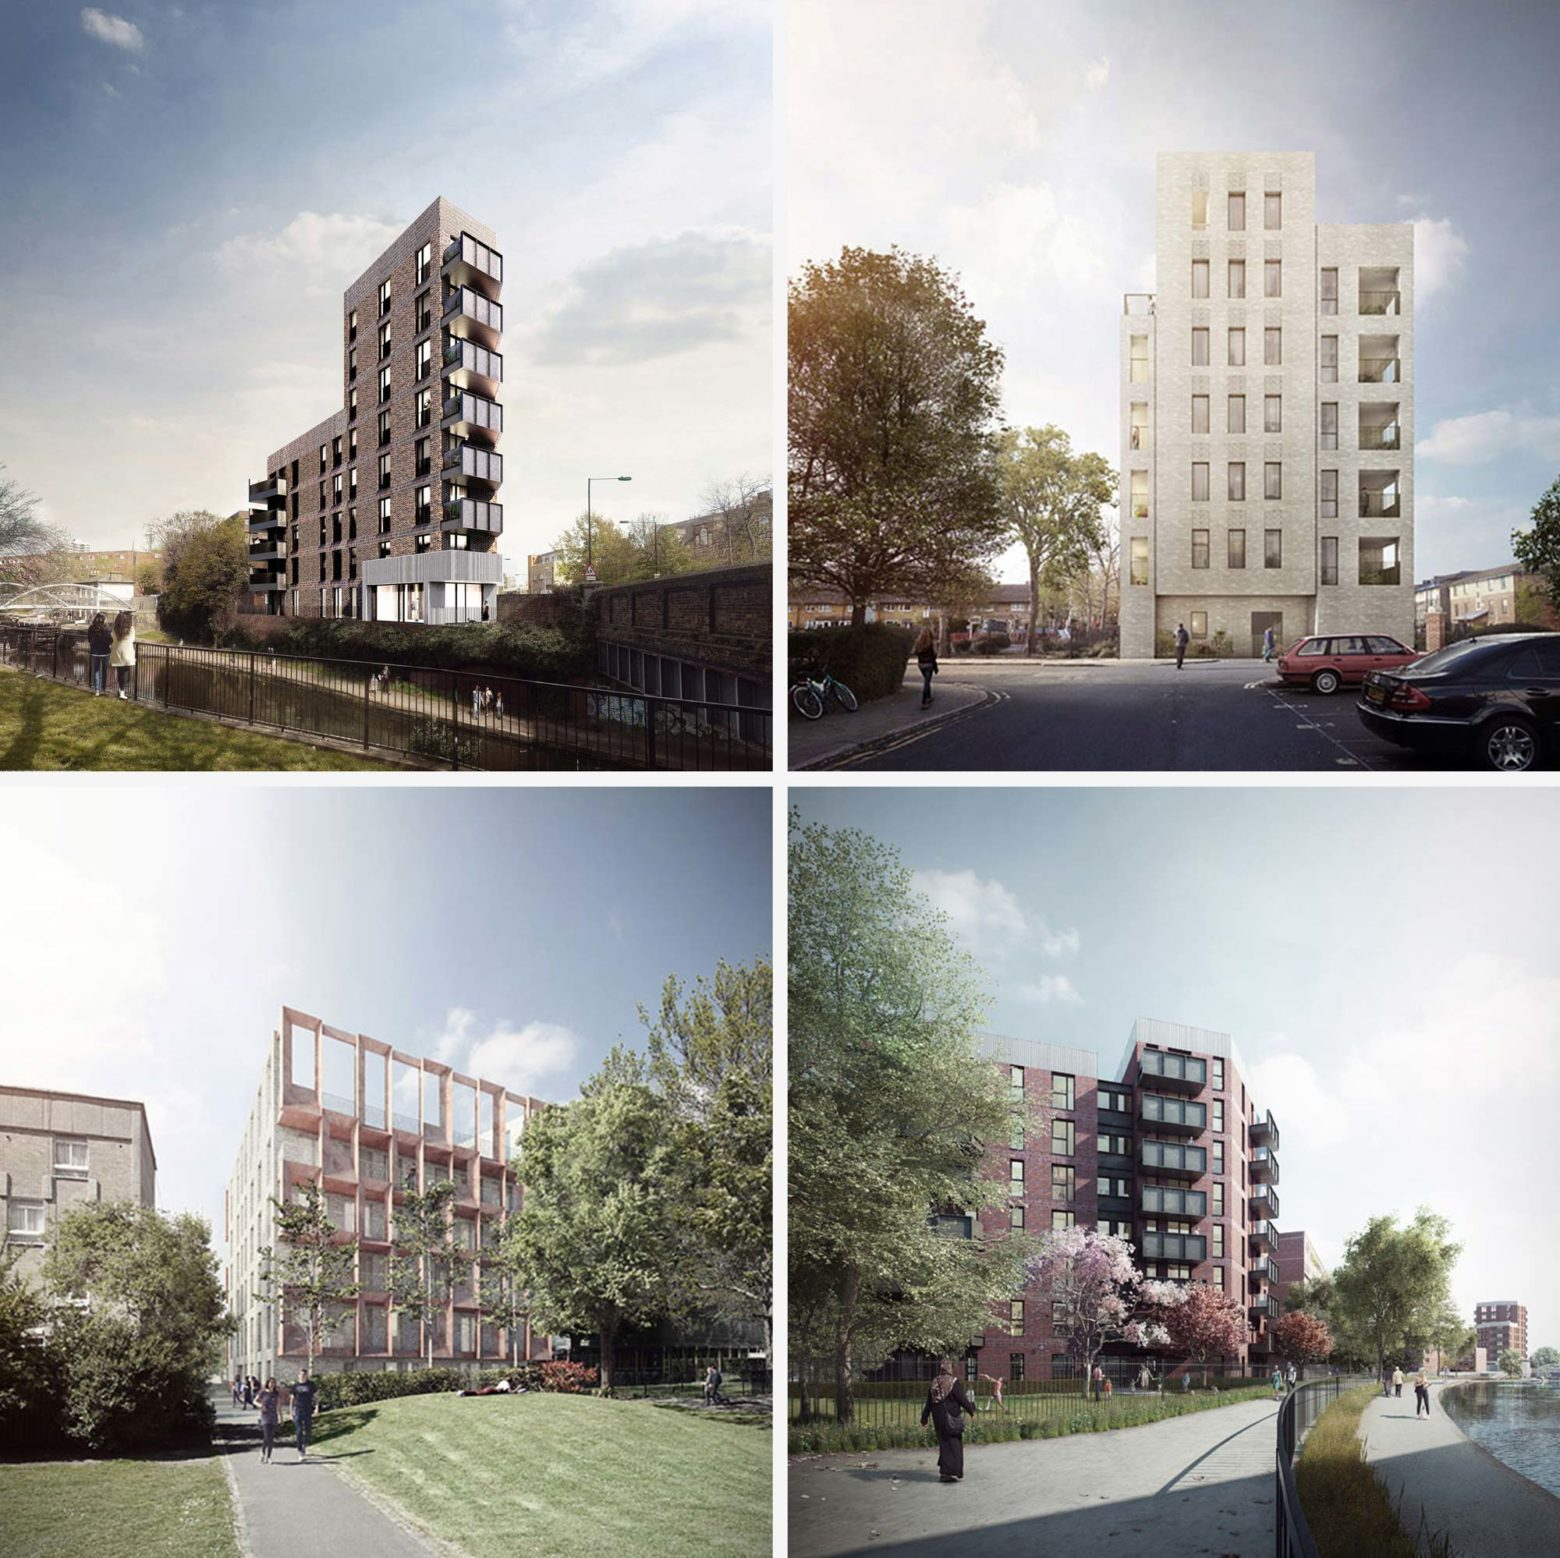 Planning granted for new council homes in Tower Hamlets